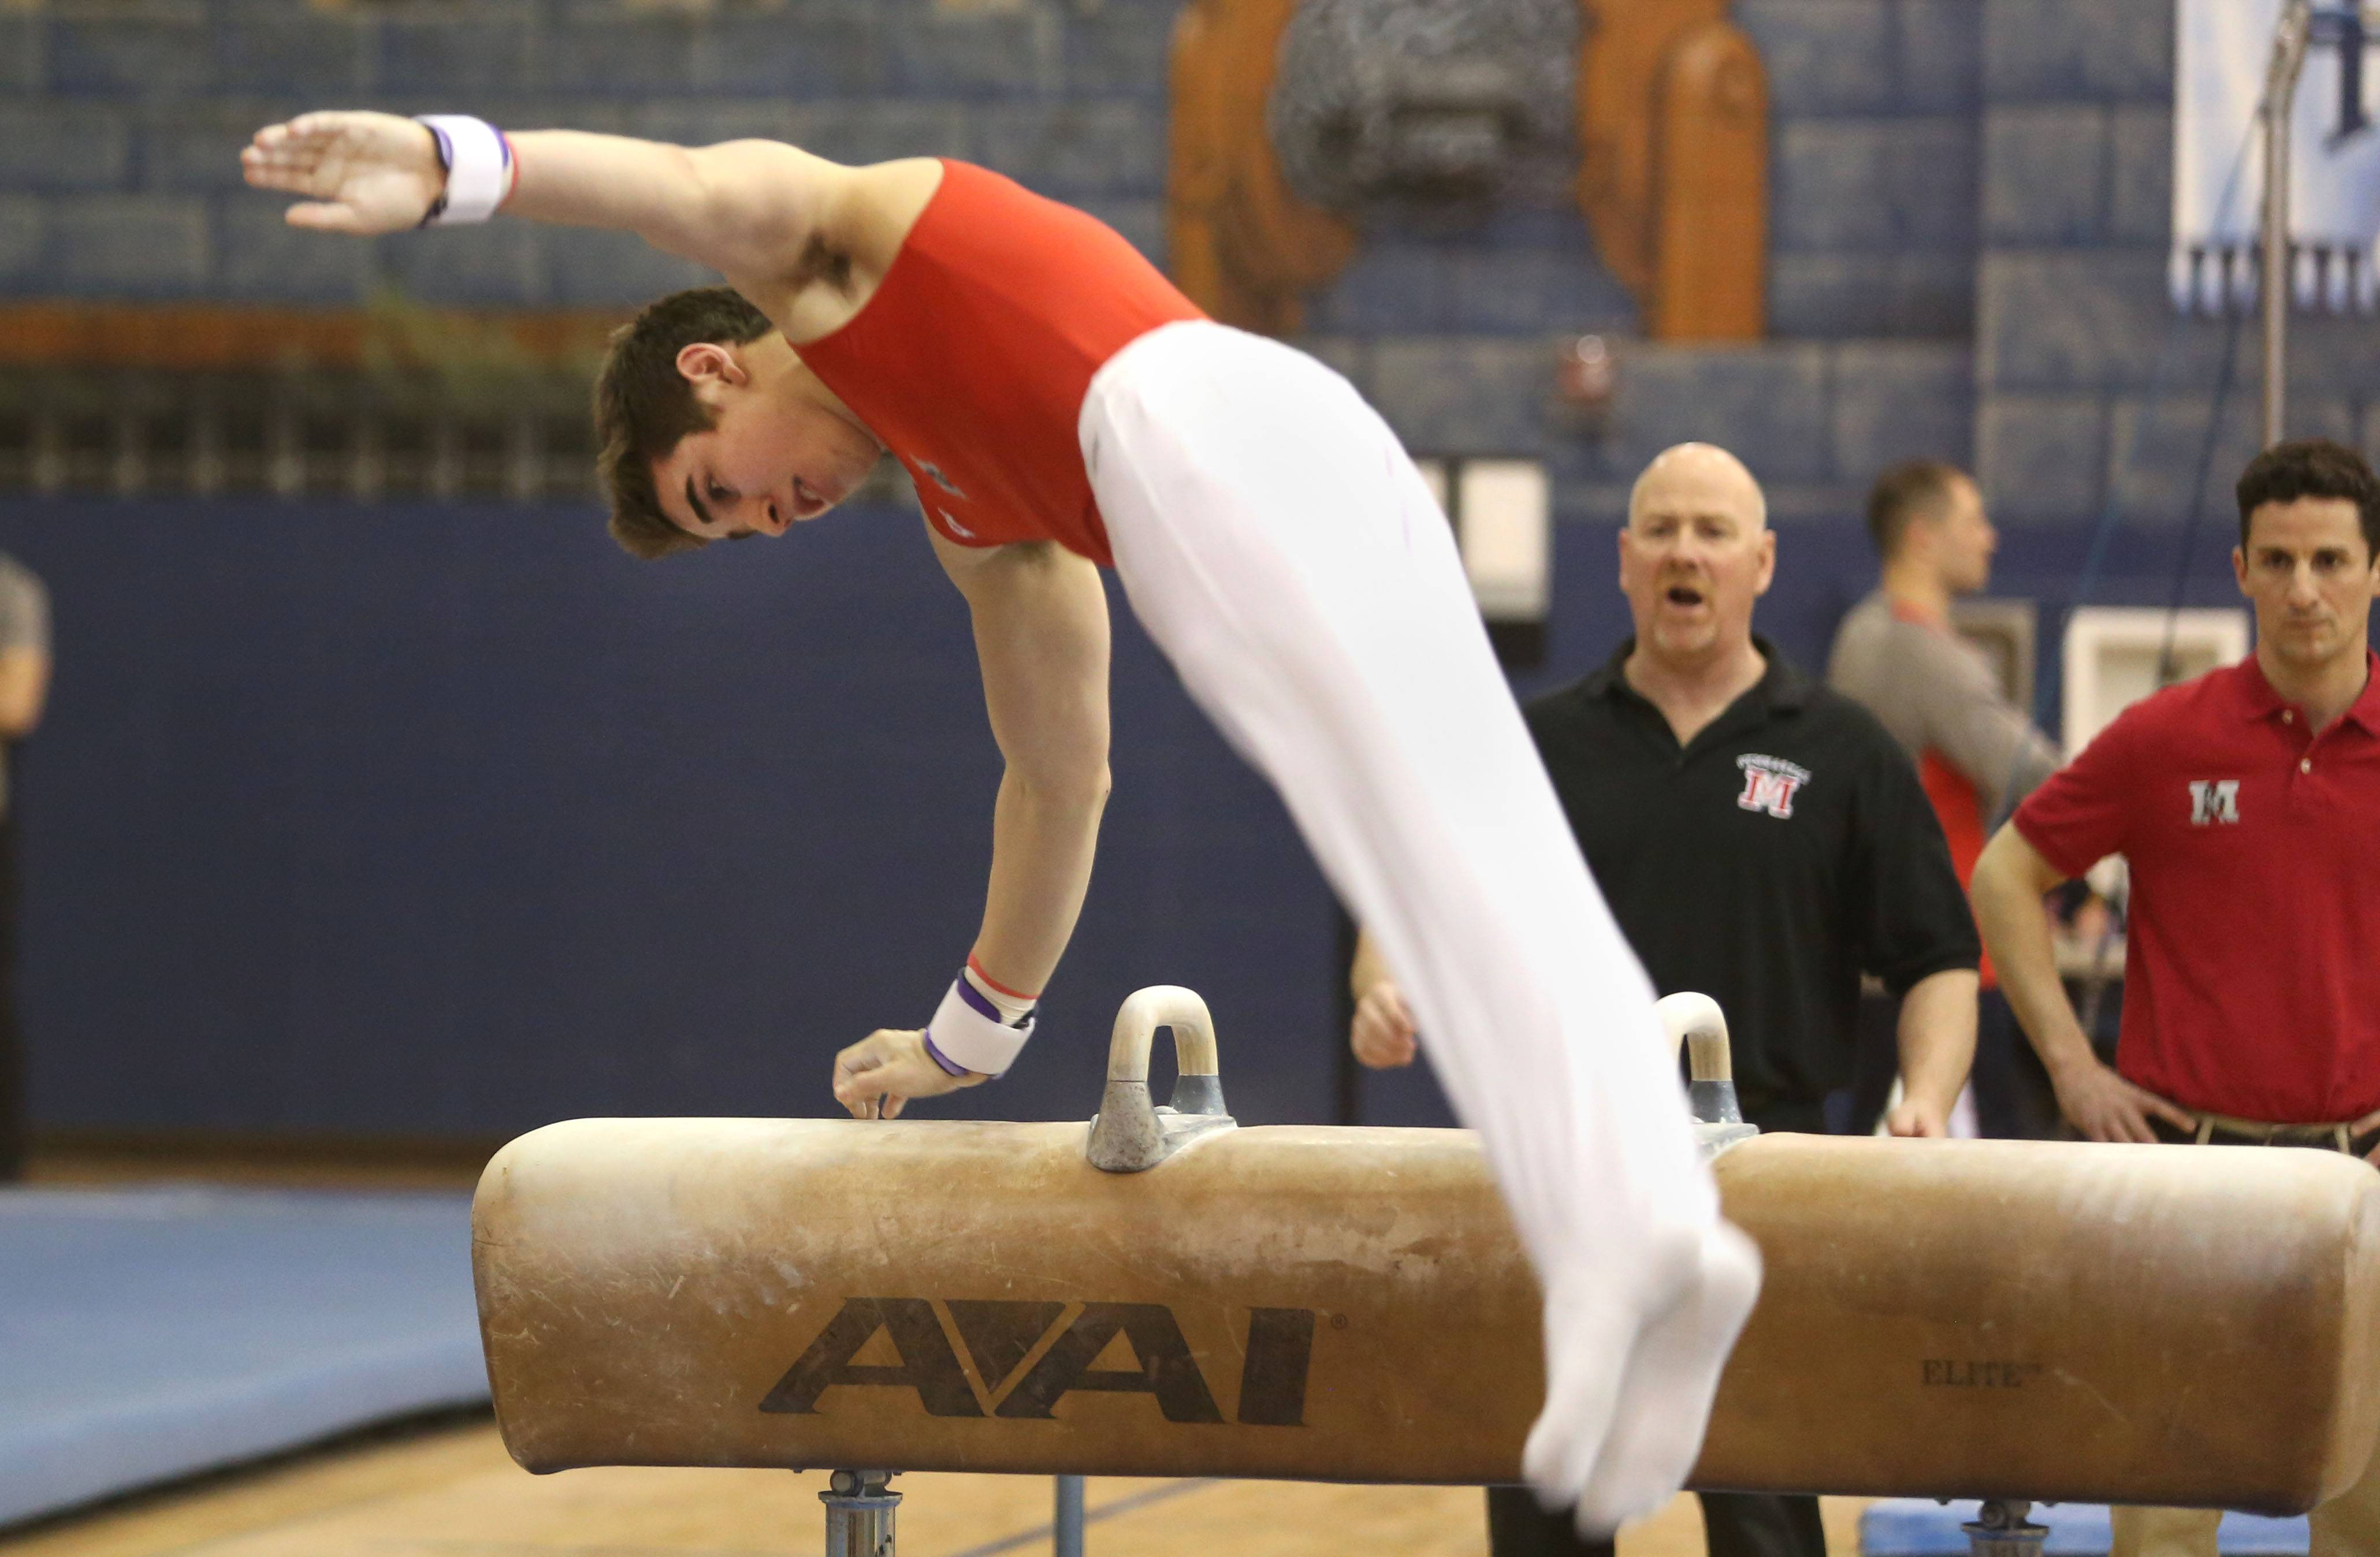 Mundelein's Colin McCarthy performs his pommel horse routine during the Ralph Krupke Invitational at Lake Park High School.